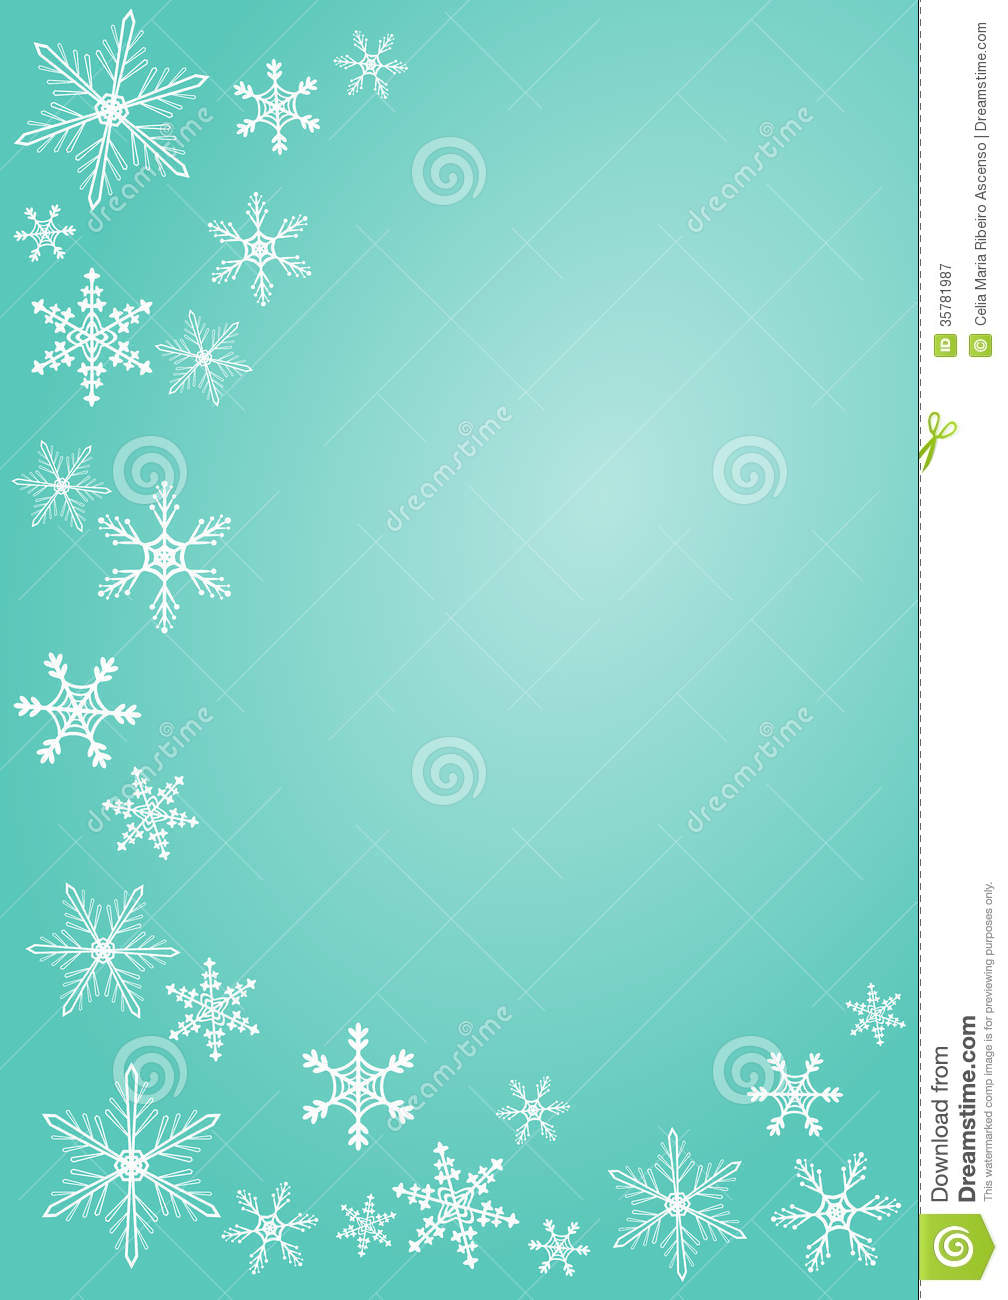 Christmas Snowflake Greeting Card Royalty Free Stock Photography ...